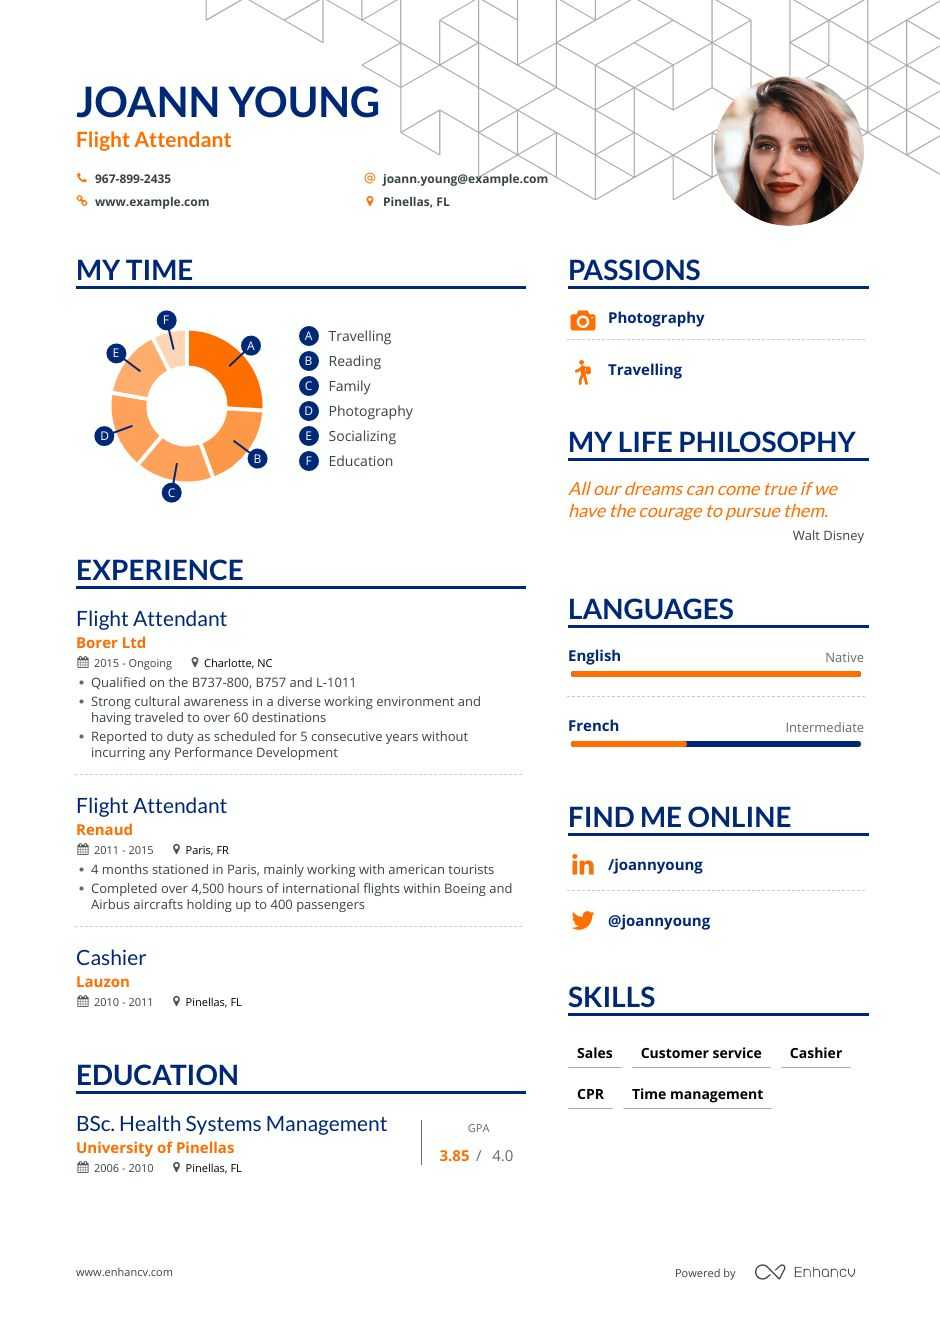 flight attendant resume examples guide pro tips enhancv sample college template owl Resume Flight Attendant Resume Examples